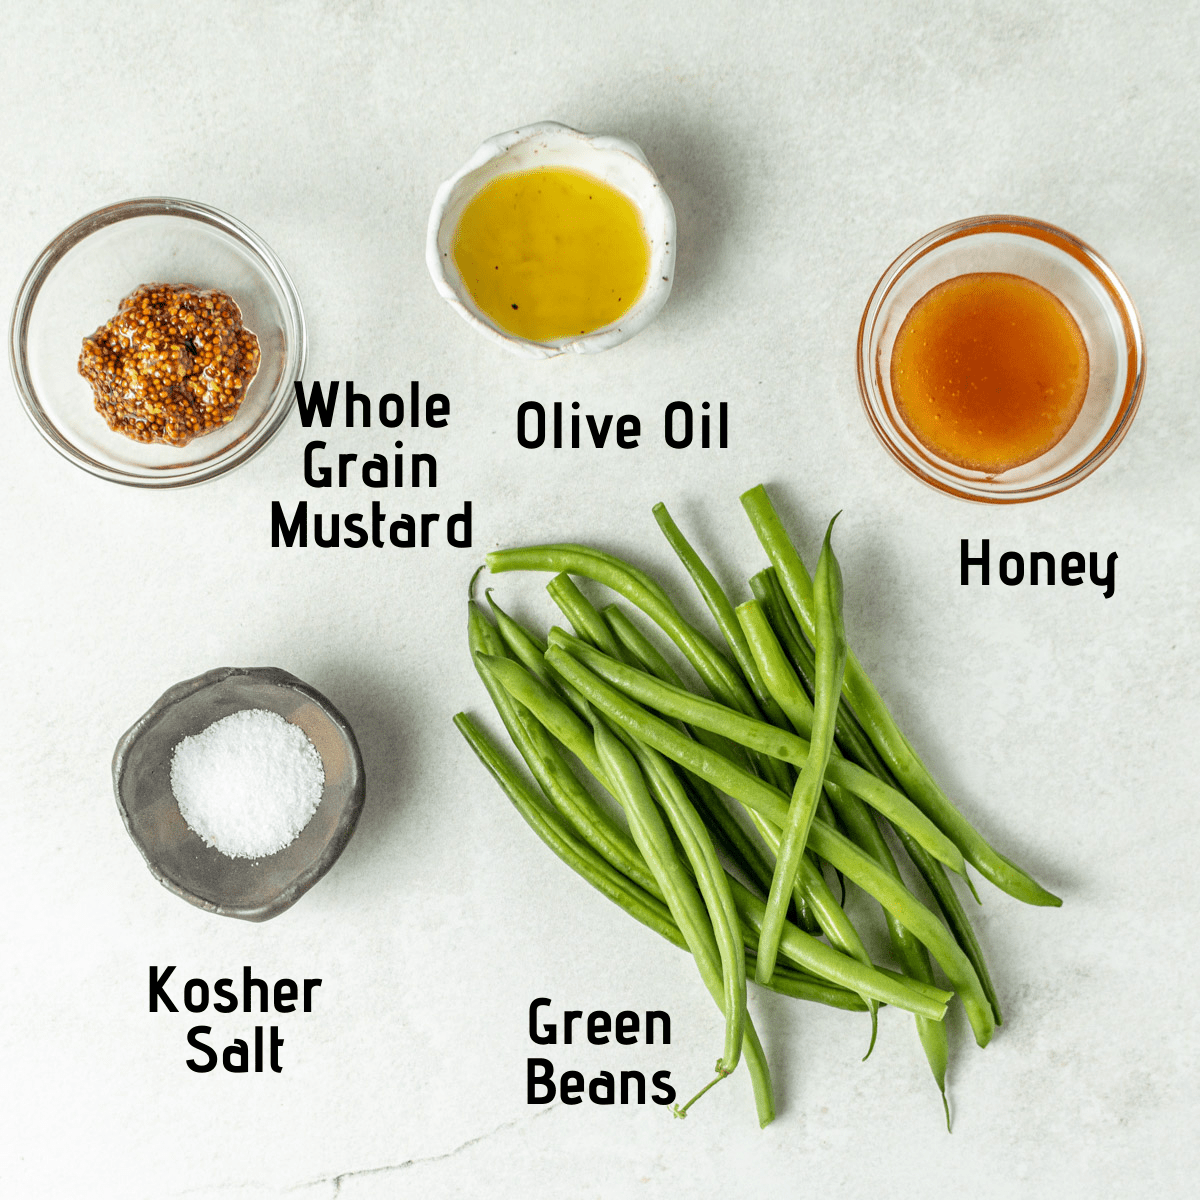 Raw ingredients laid out on a white background, labeled: whole grain mustard, olive oil, honey, kosher salt and green beans.